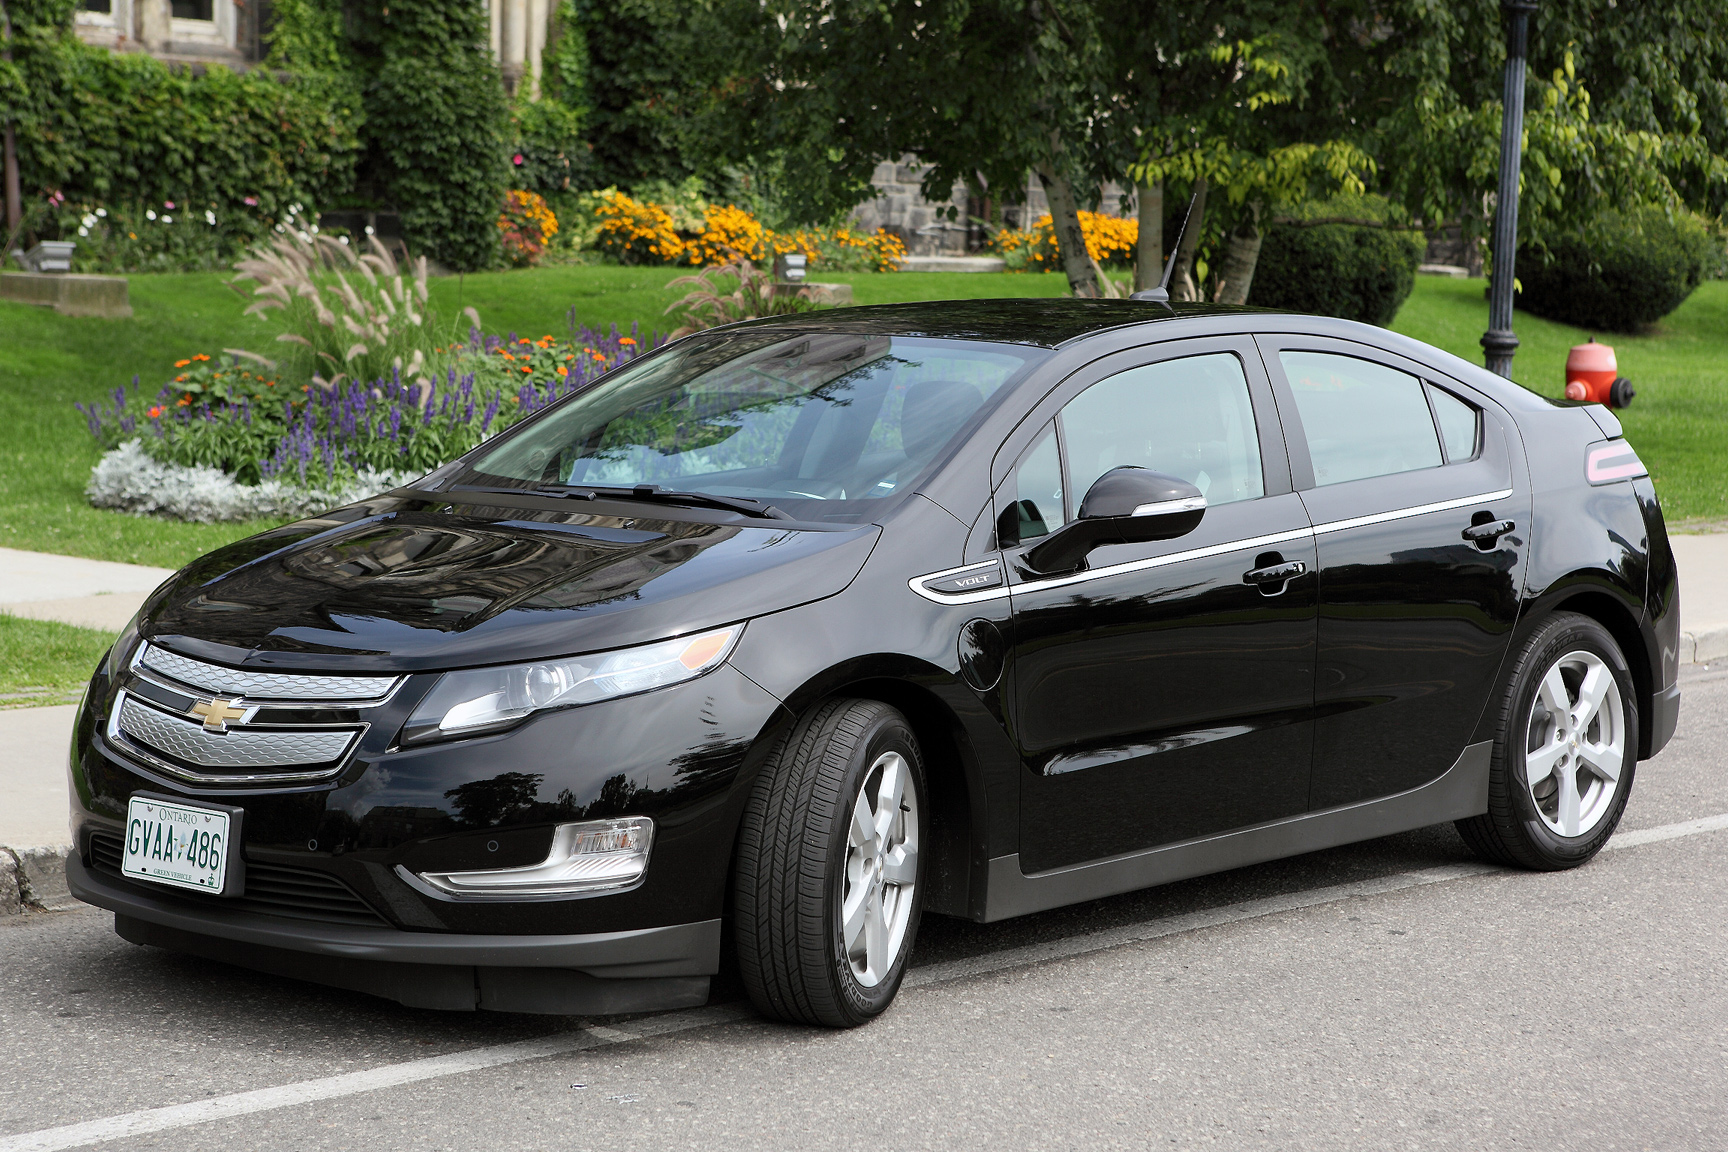 2012 chevrolet volt review redlinenorth. Black Bedroom Furniture Sets. Home Design Ideas